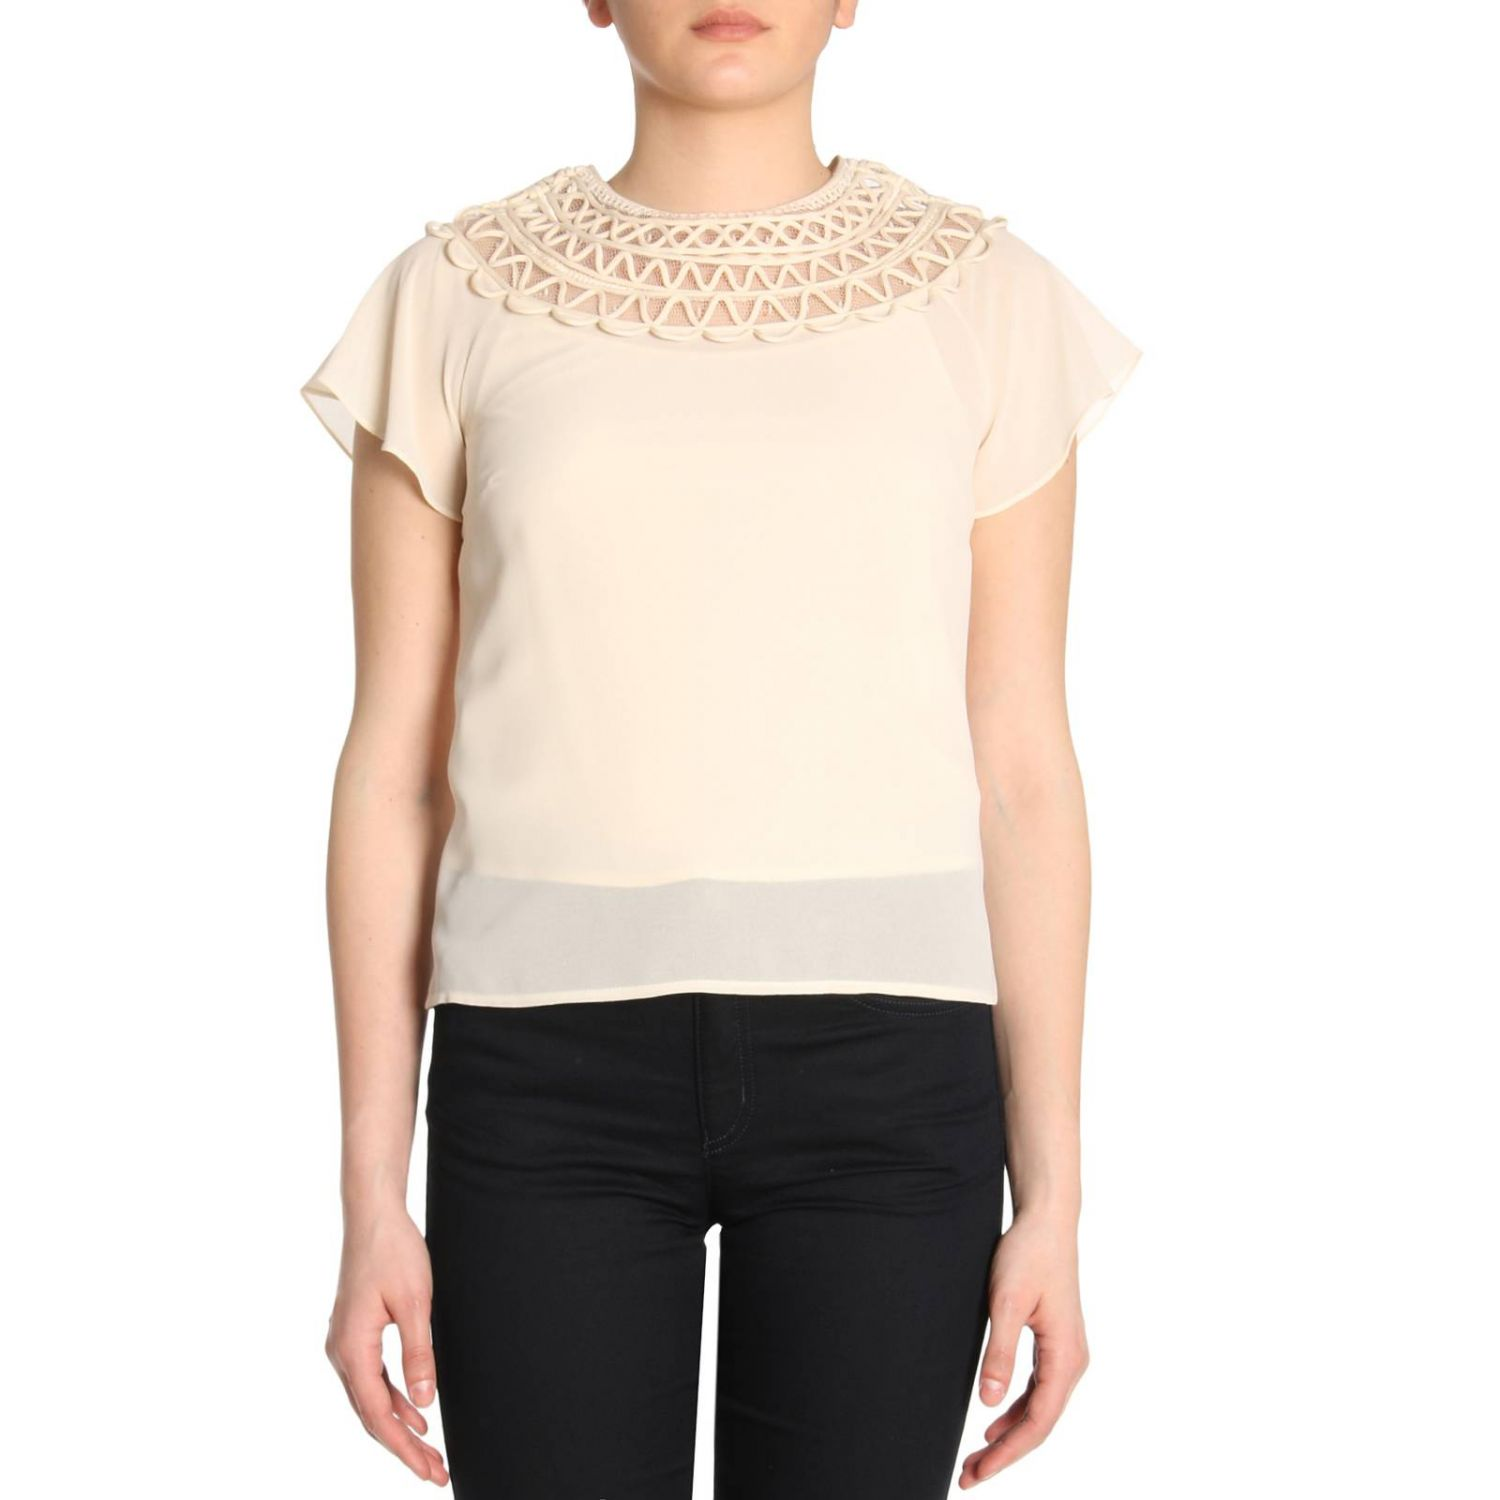 Top Top Women Red Valentino 8293208